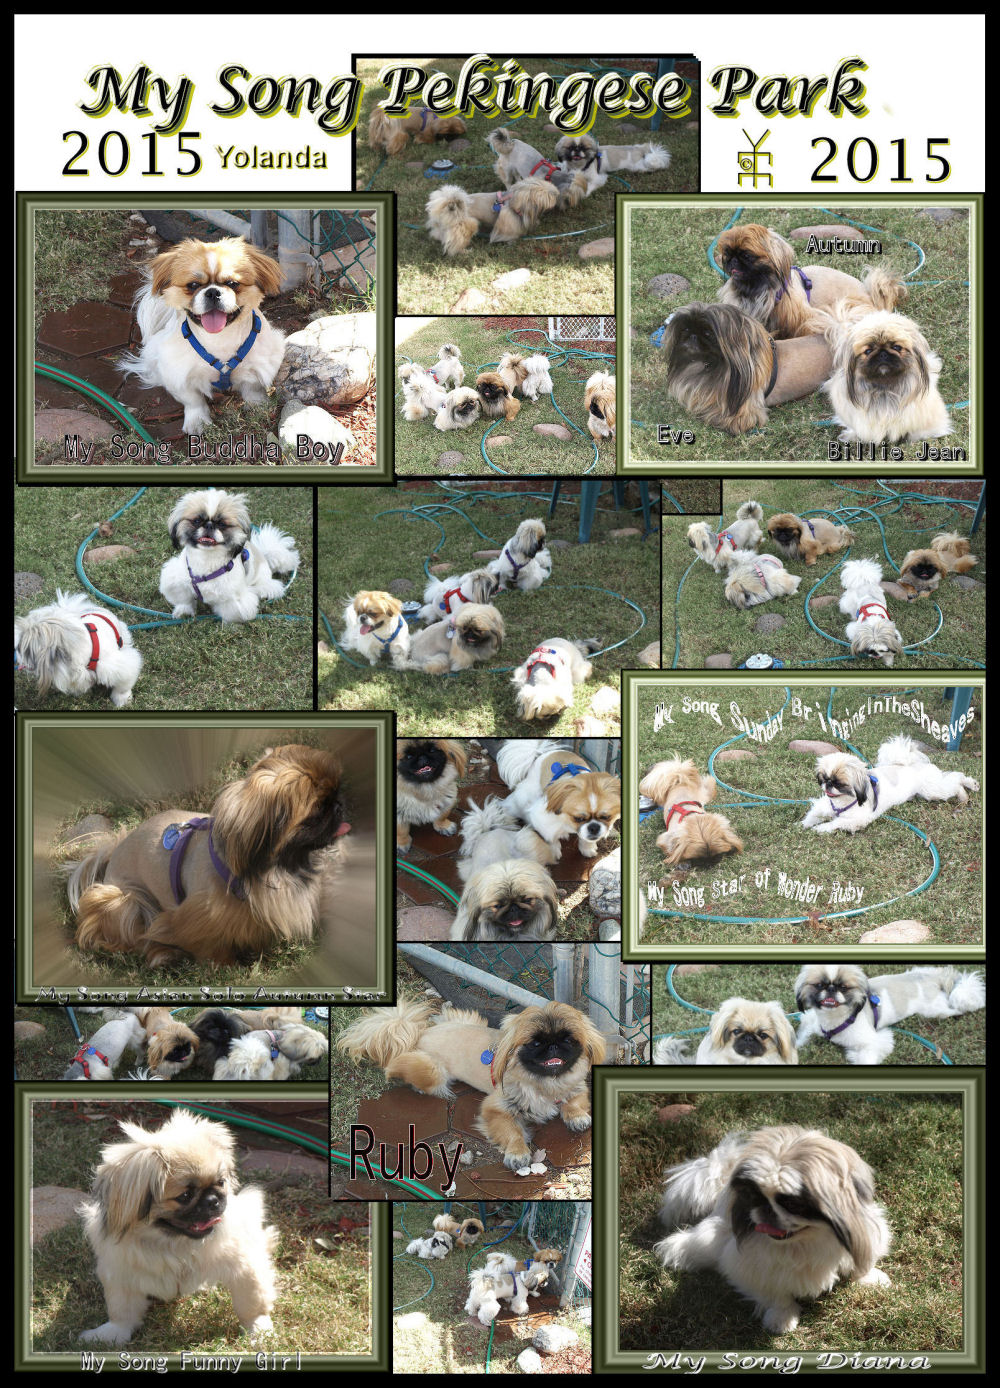 MY Song Pekingese Park Photo Collage